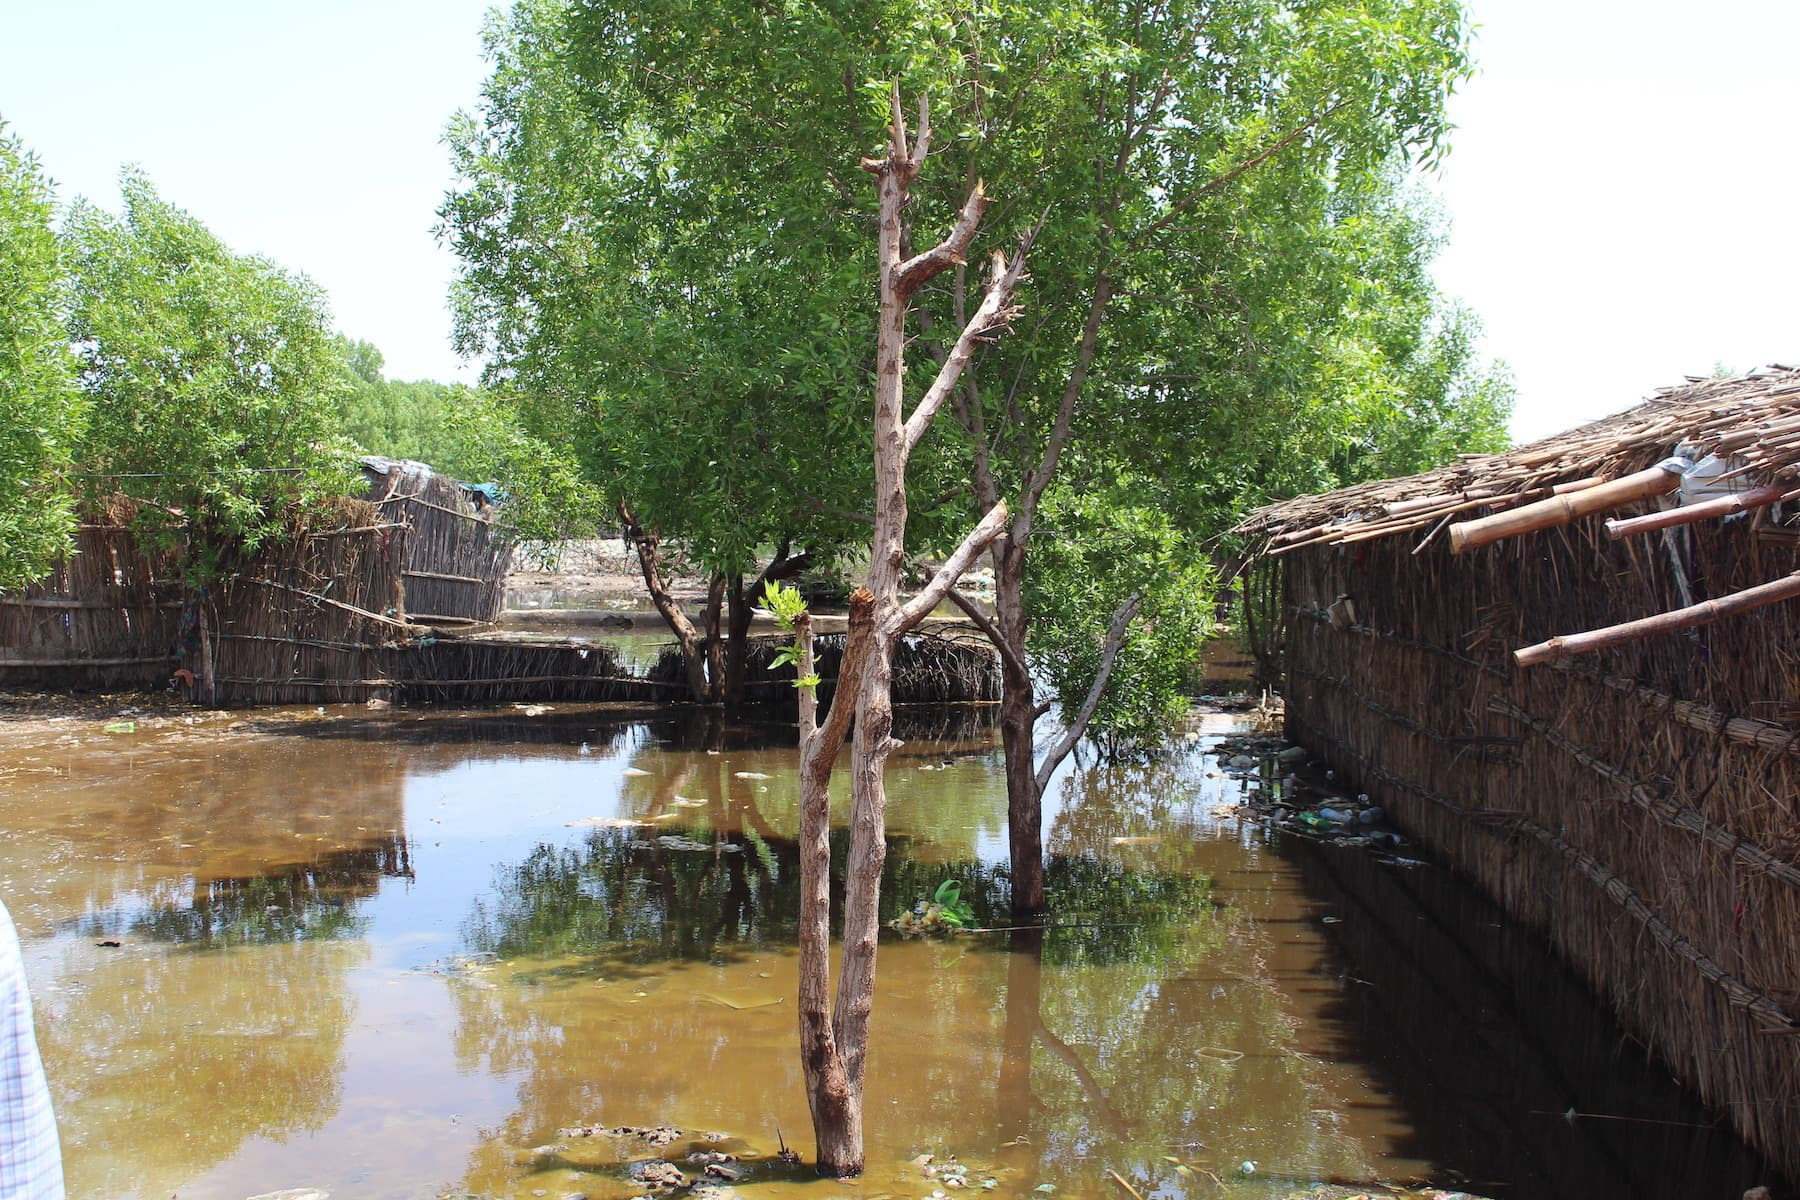 An inundated village in UC-1 of Mirpurkhas city. Hundreds of thousands of people have been forced to abandon their homes and take shelter in make-shift tents on the roads due to the flooding caused by the recent rains. — Photo by author